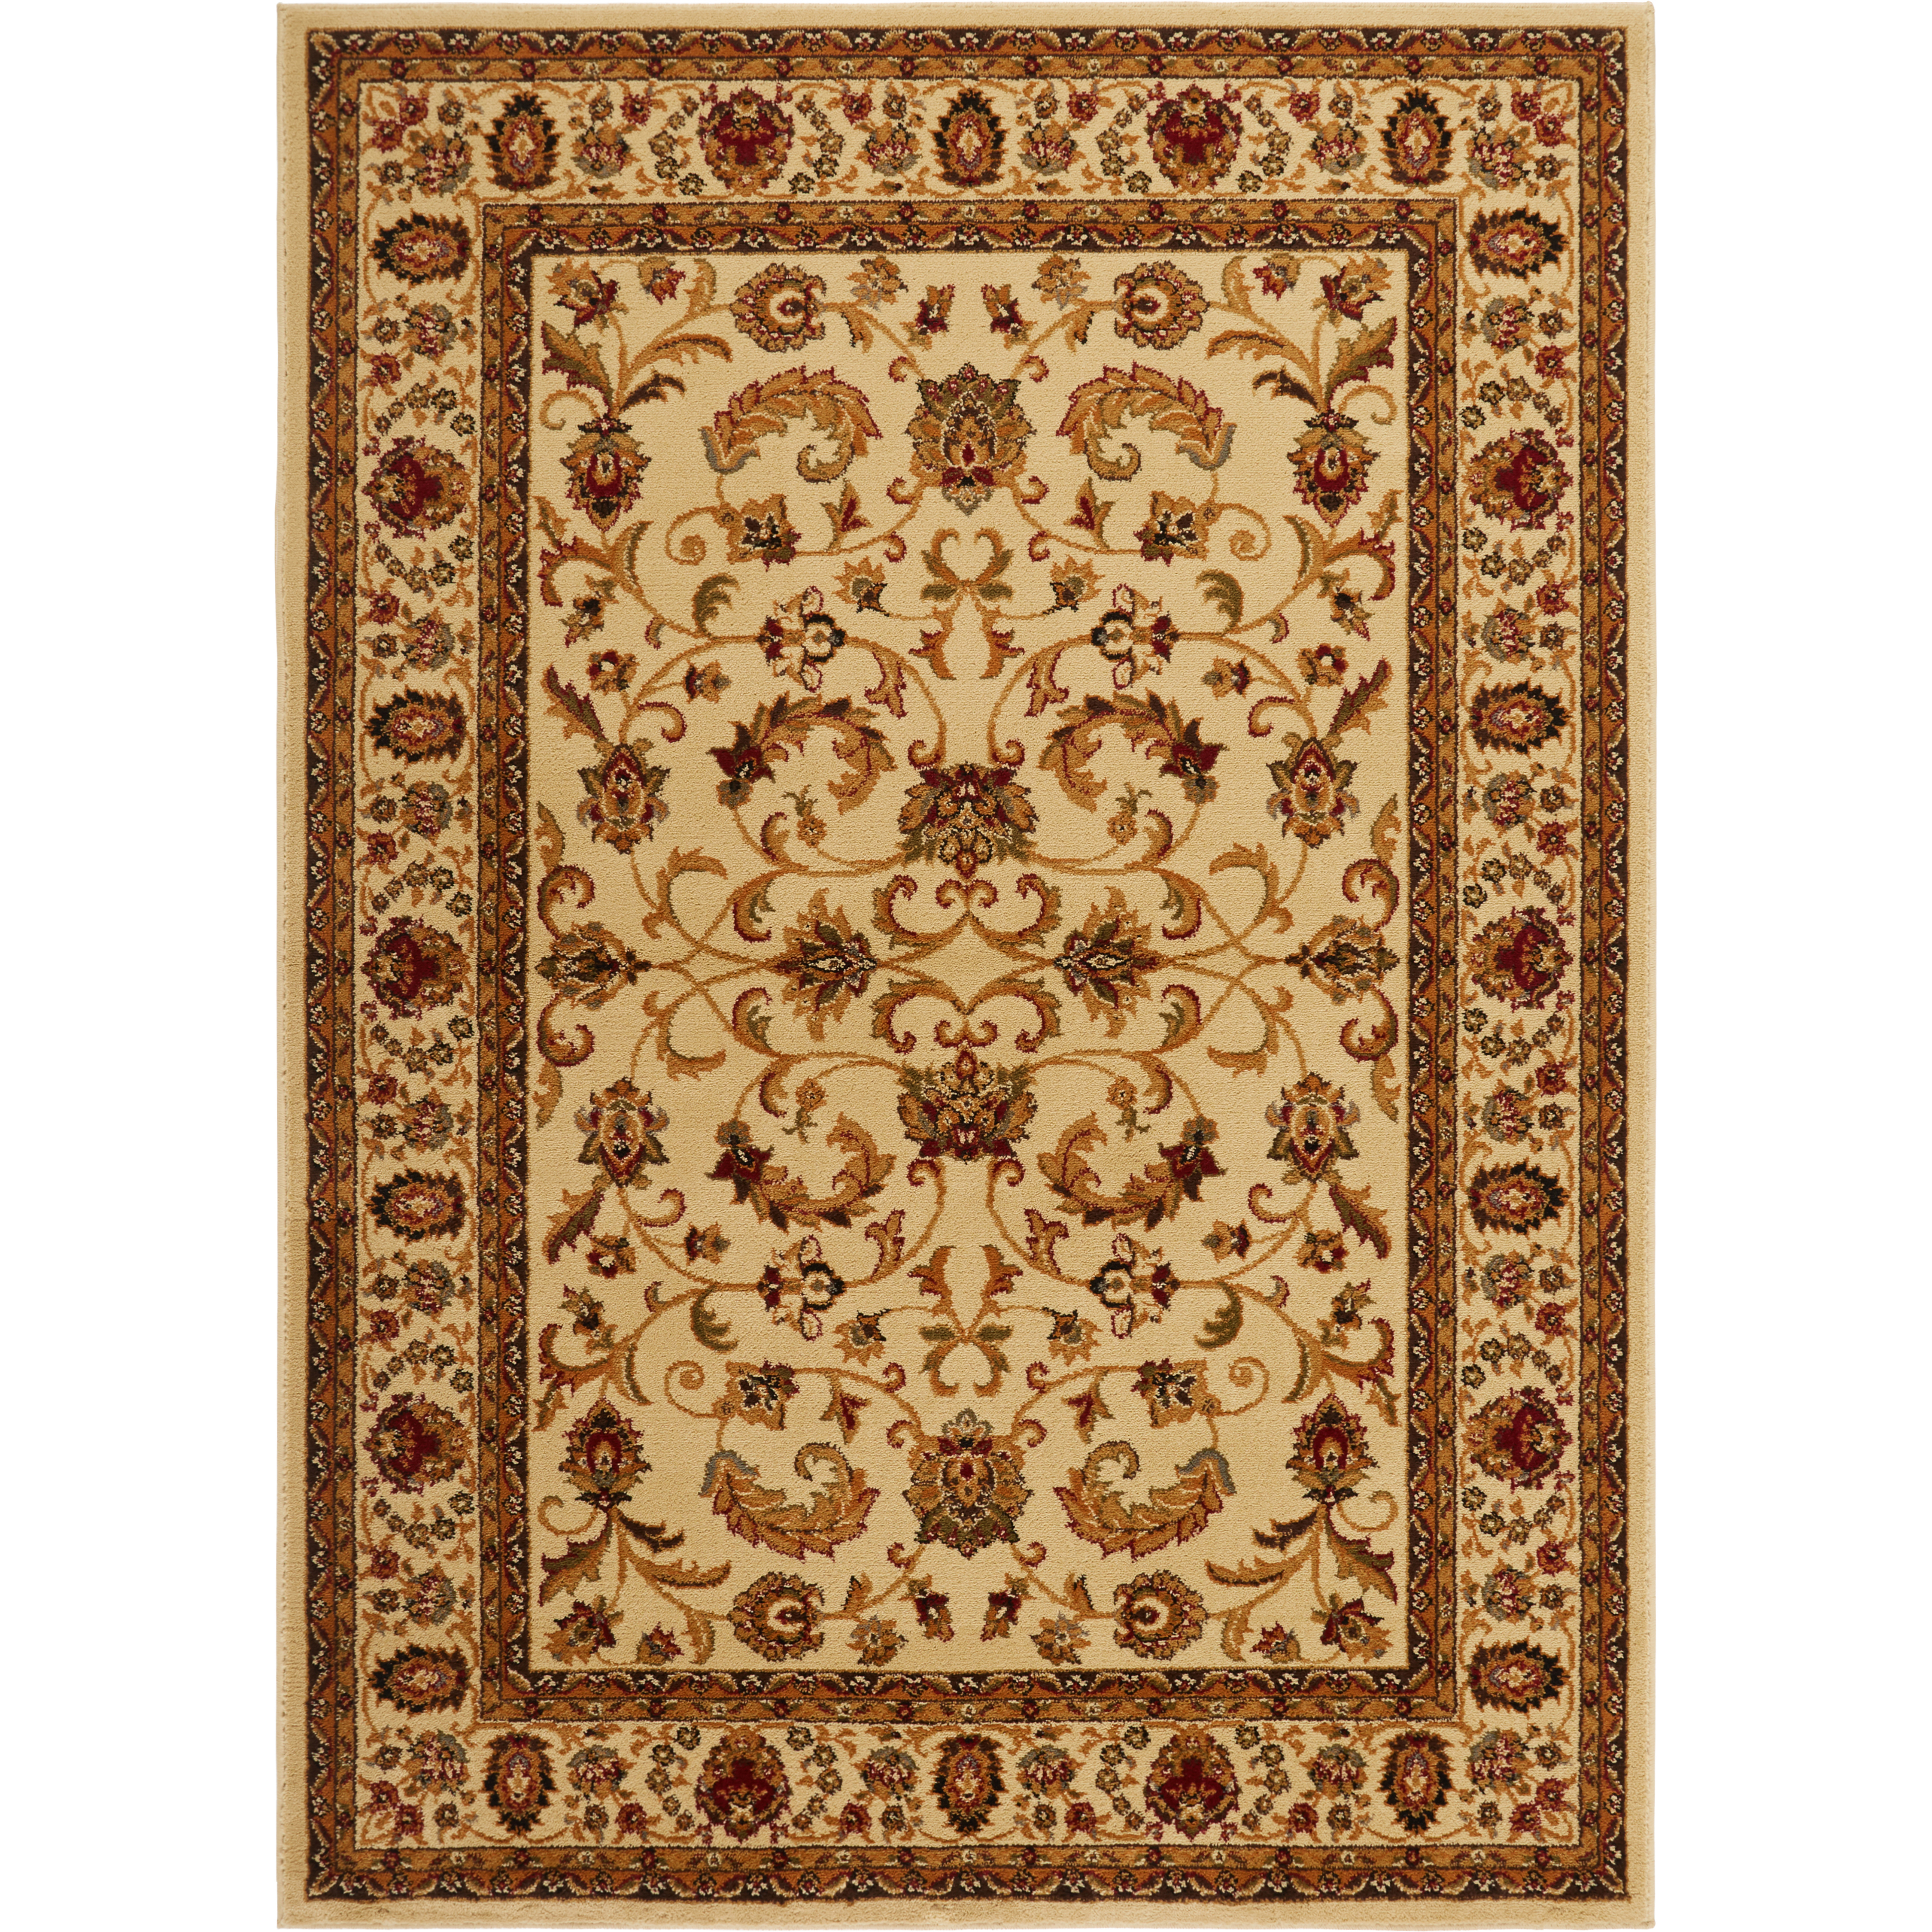 Home Dynamix S Royalty Collection Proves That An Upscale Luxurious Look Need Not Be Expensive Fresh Trendy And Stylish These Indoor Area Rugs Are The